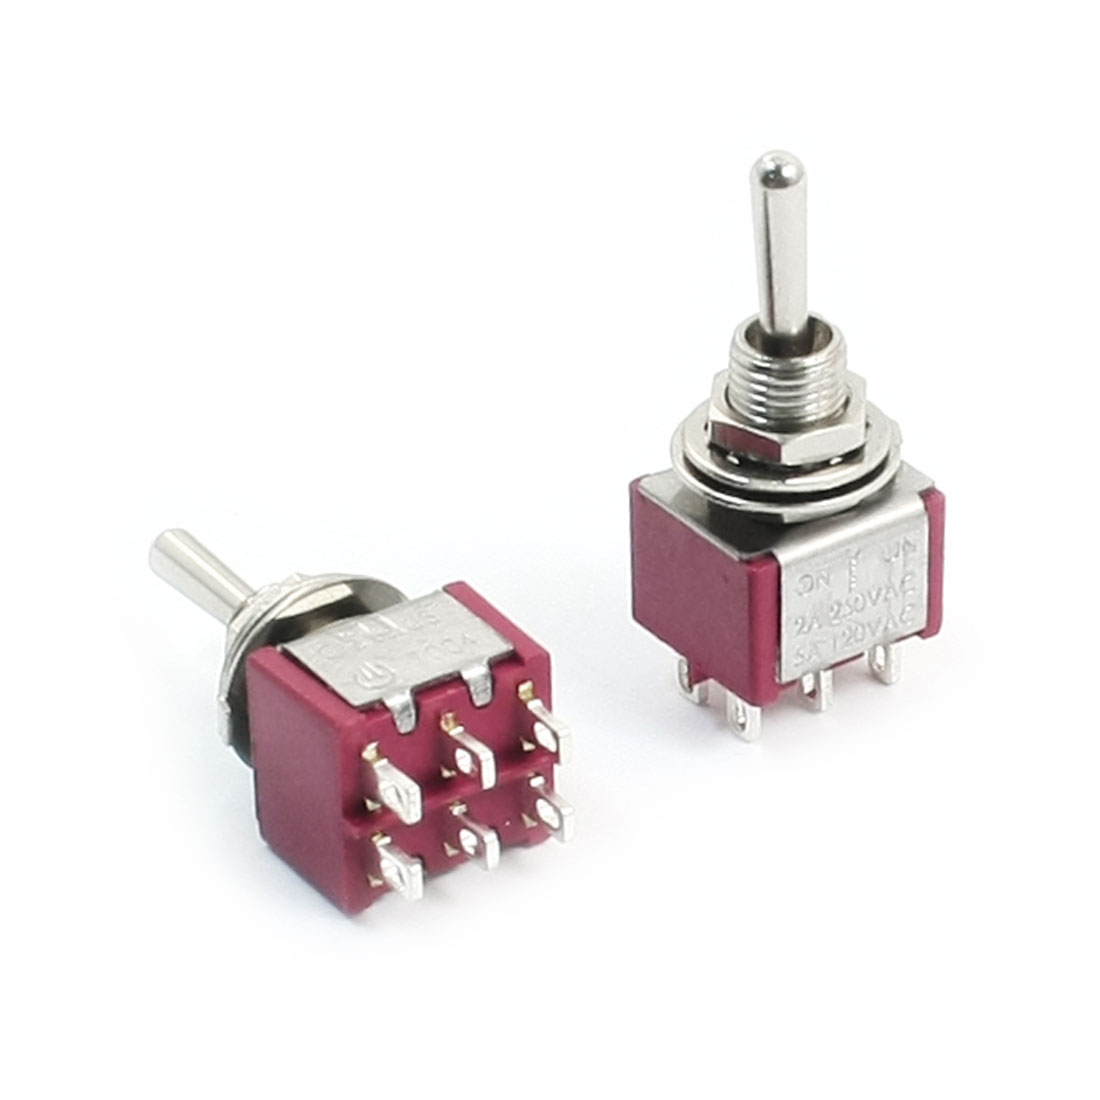 2pcs Switching Light Toggle Switch 3 Positions 6Pins DPDT Momentary